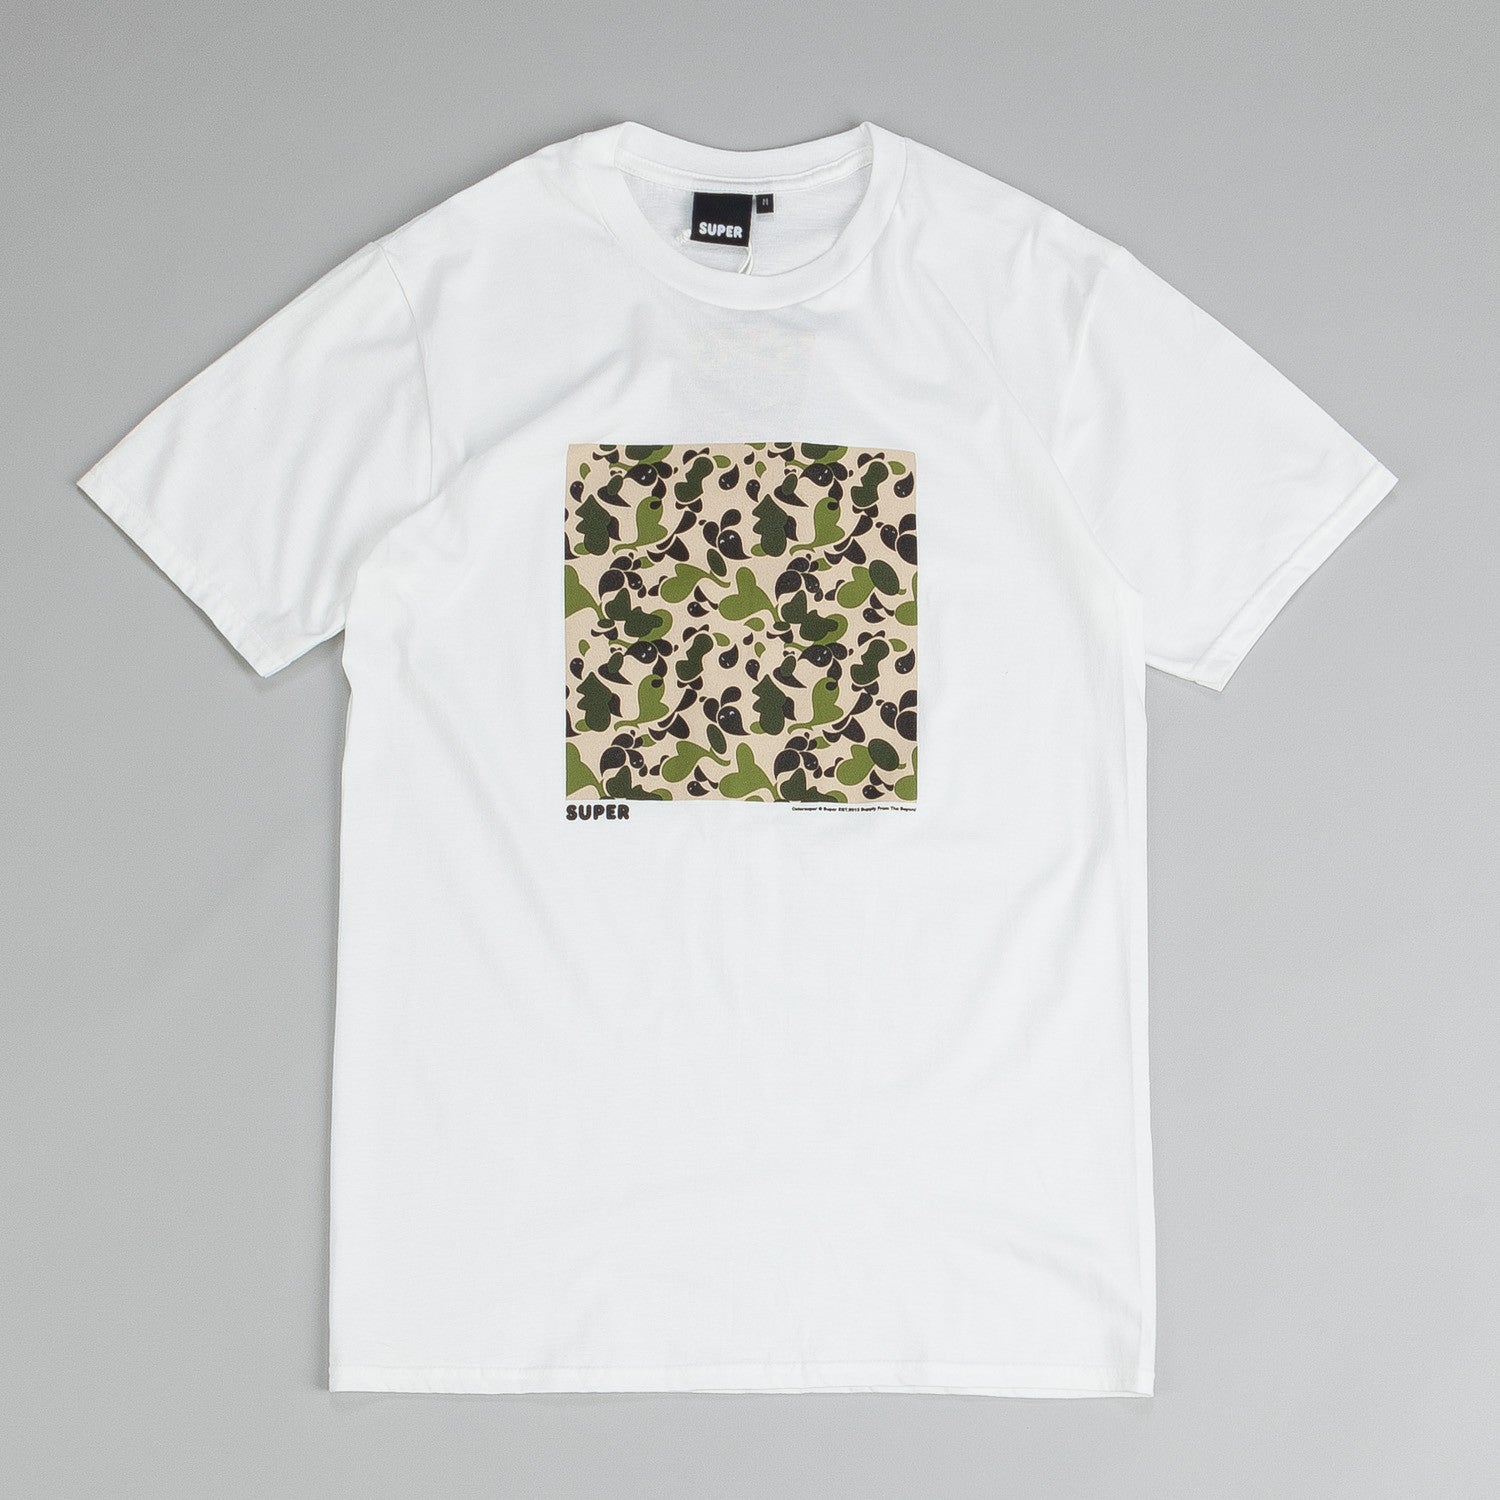 Colorsuper Camo Block T Shirt Green / Desert / Black